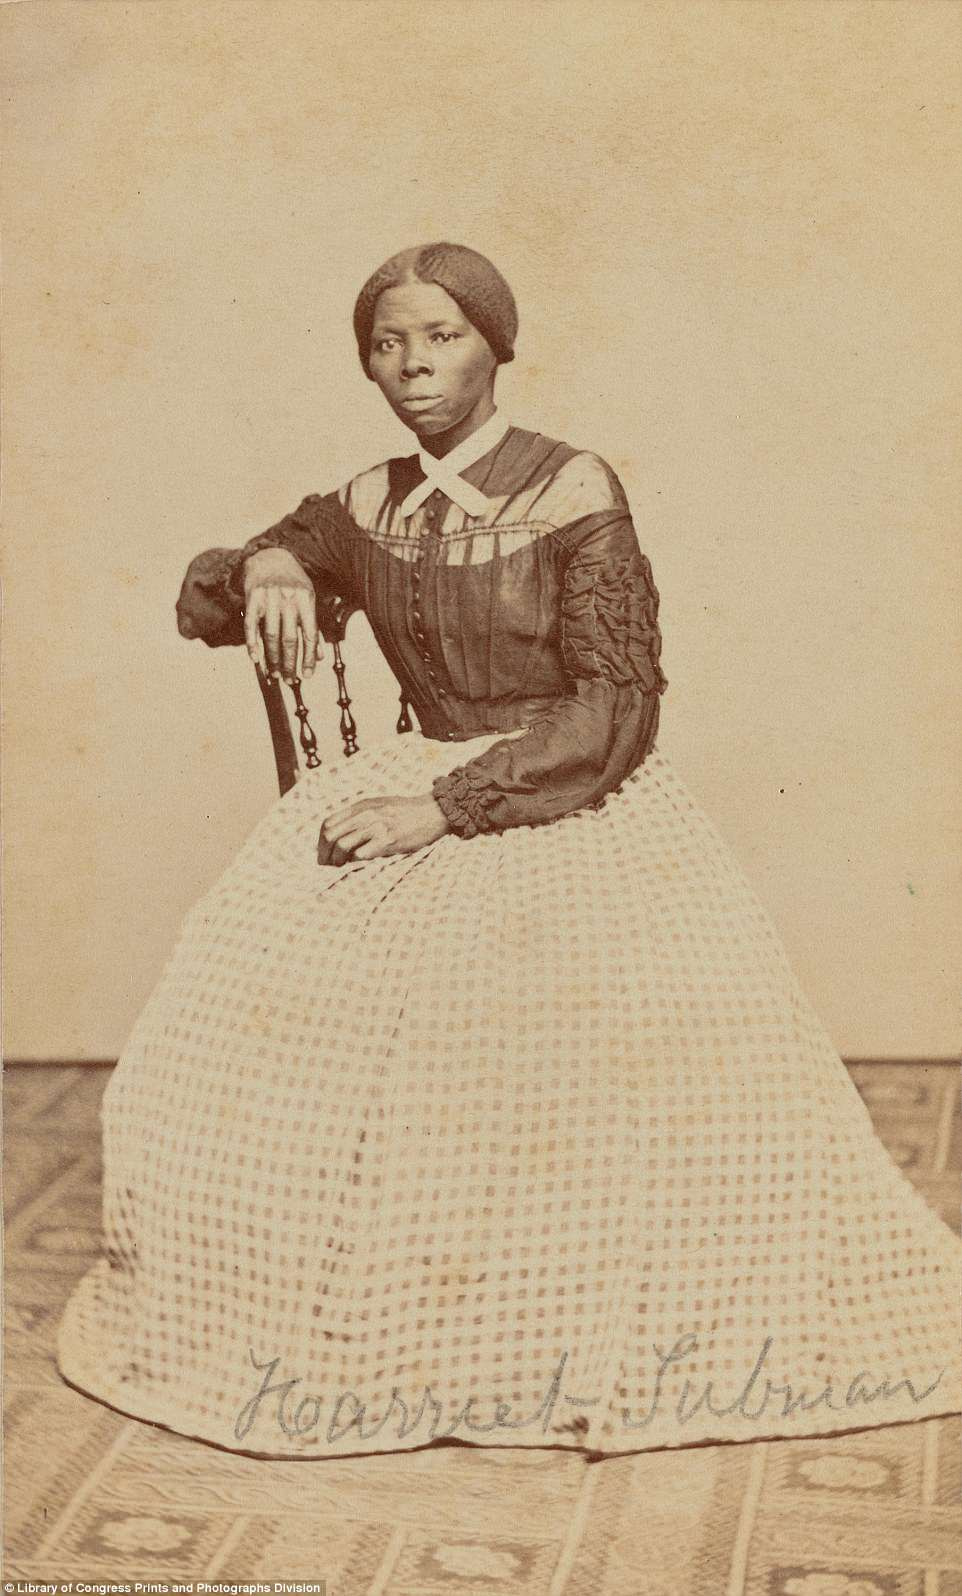 The photograph above shows Harriet Tubman - the famed American abolitionist and political activist who escaped slavery and helped dozens of other enslaved blacks find freedom